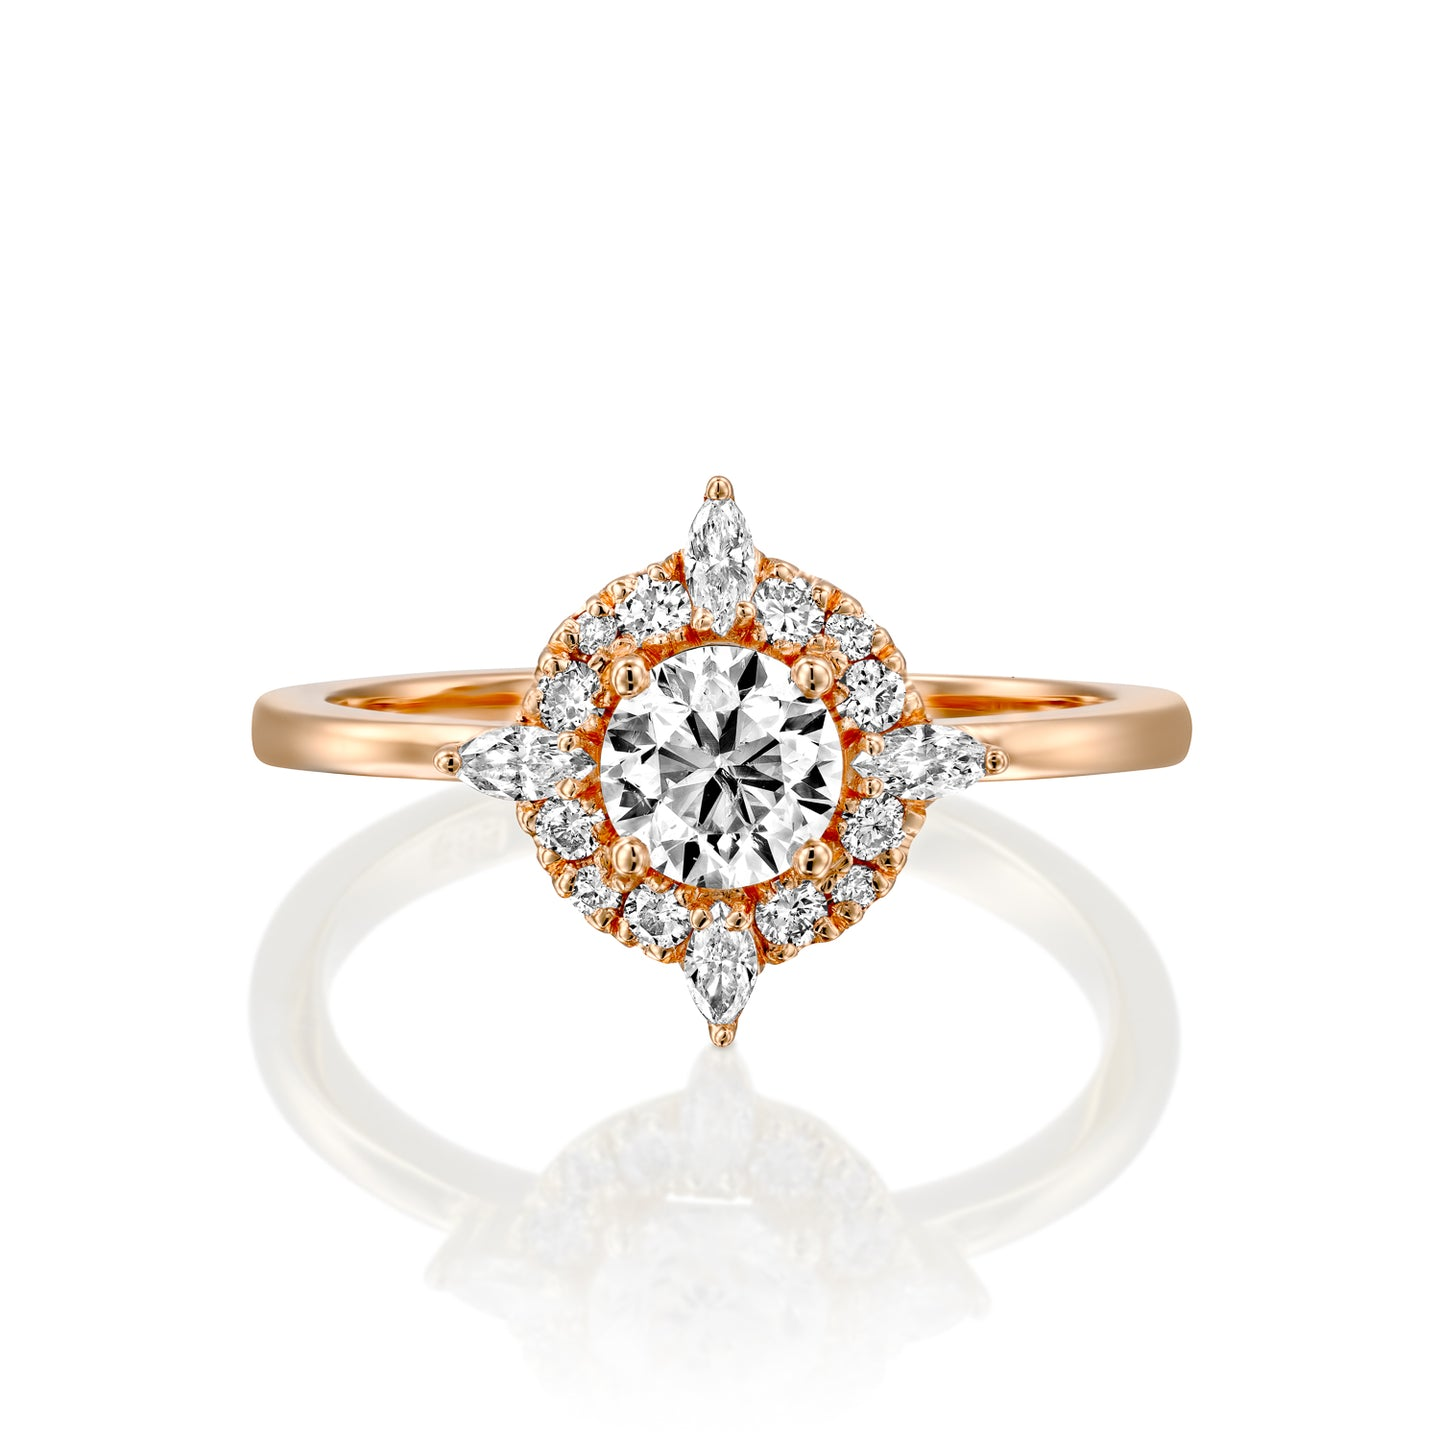 0.9 Carat 14K Rose Gold Moissanite & Diamonds